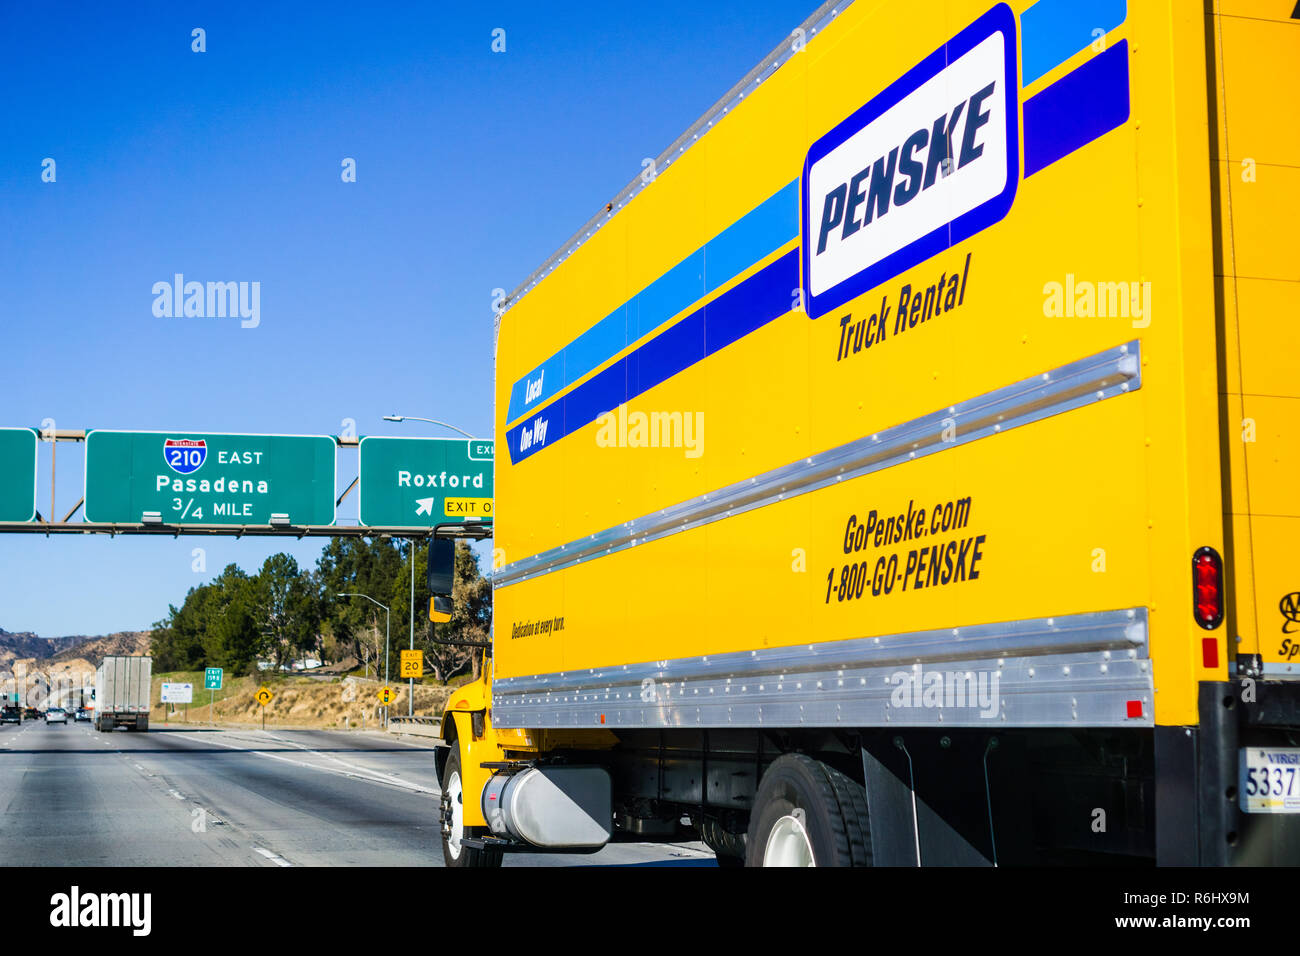 December 3, 2018 Los Angeles / CA / USA - Penske rented truck driving on the freeway - Stock Image